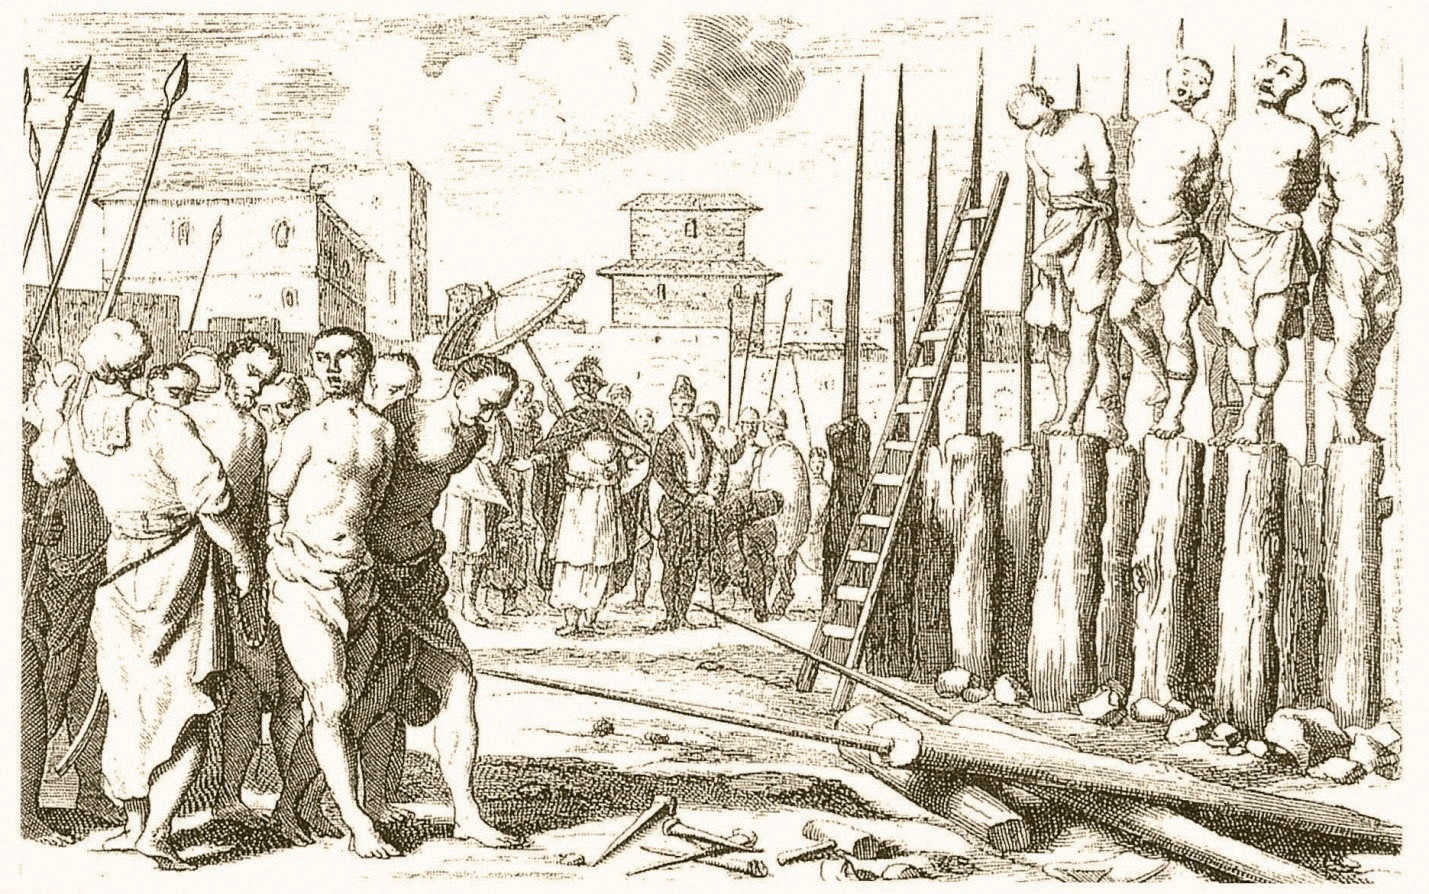 history of execution The history of the guillotine started long before the french revolution, but when and where exactly the last execution with the halifax gibbet took place in 1648.